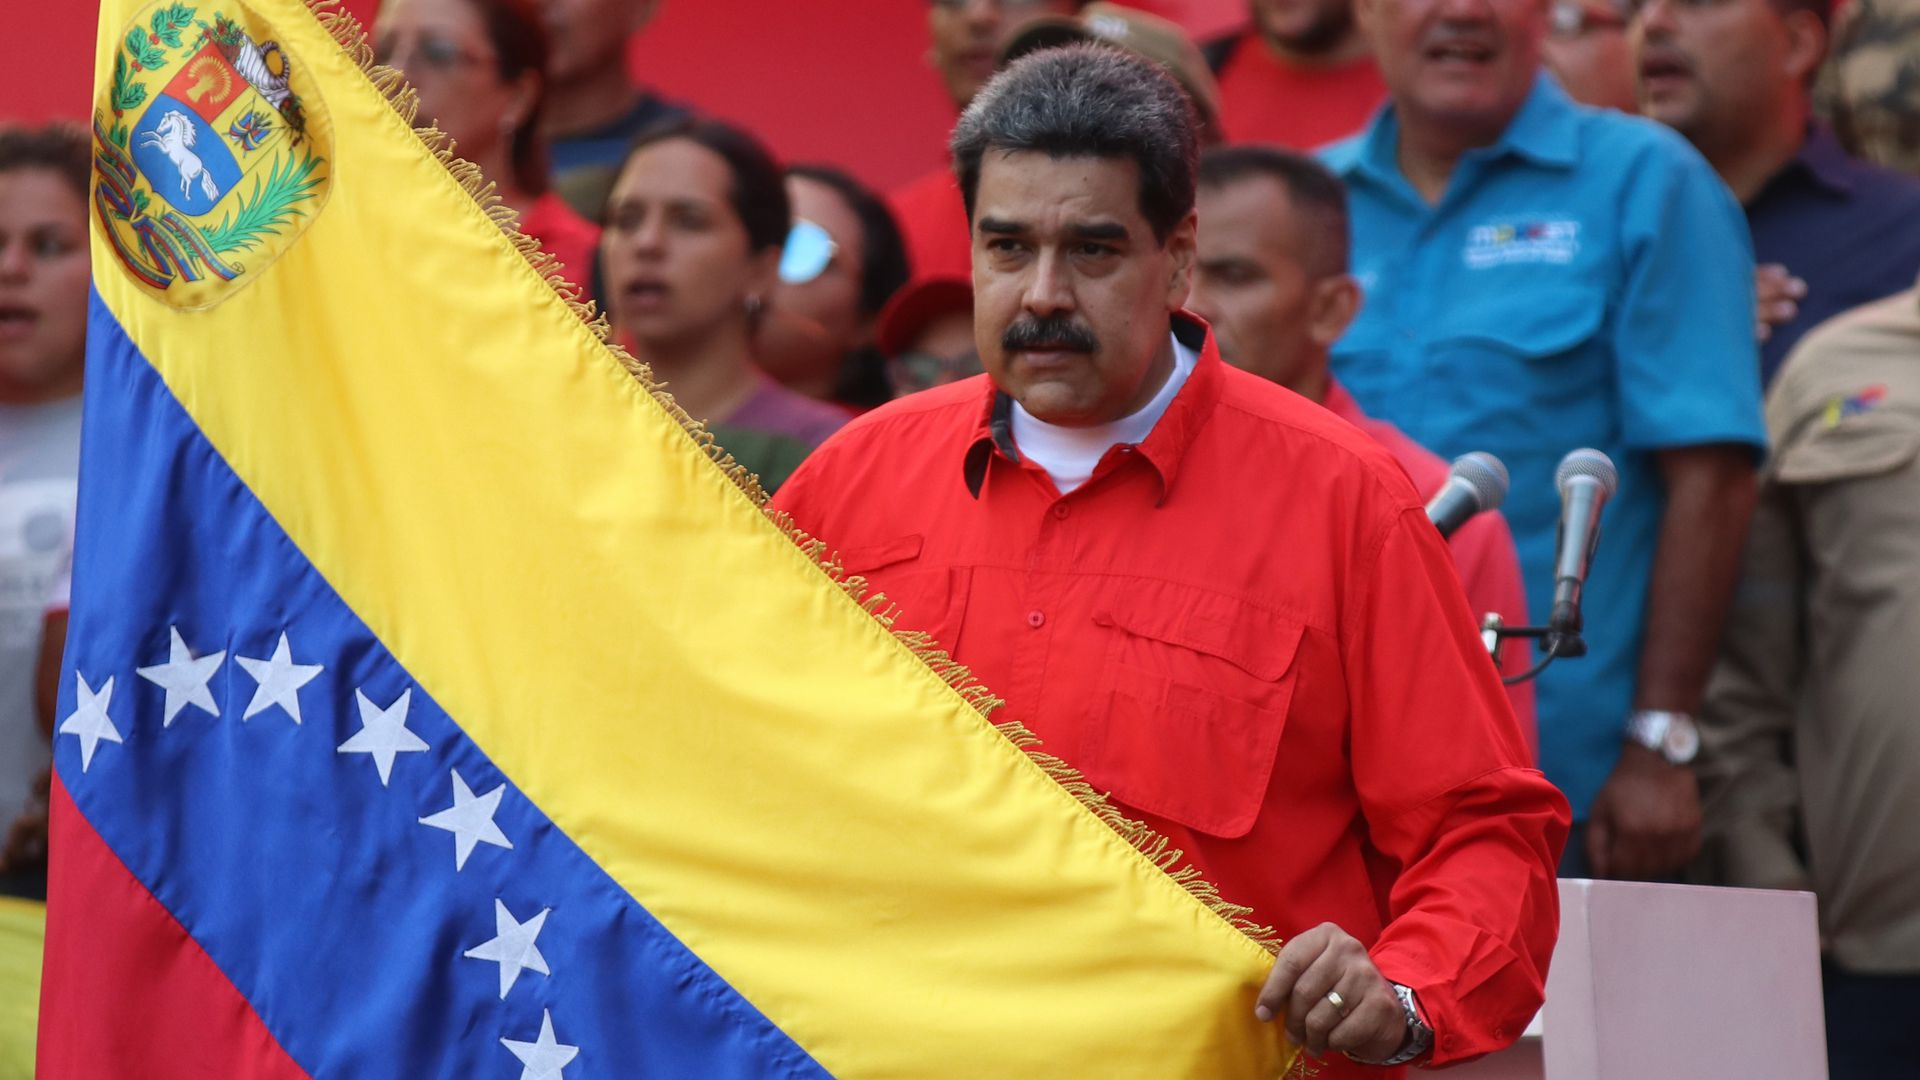 Nicolas Maduro holding up the Venzuelan flag at a rally